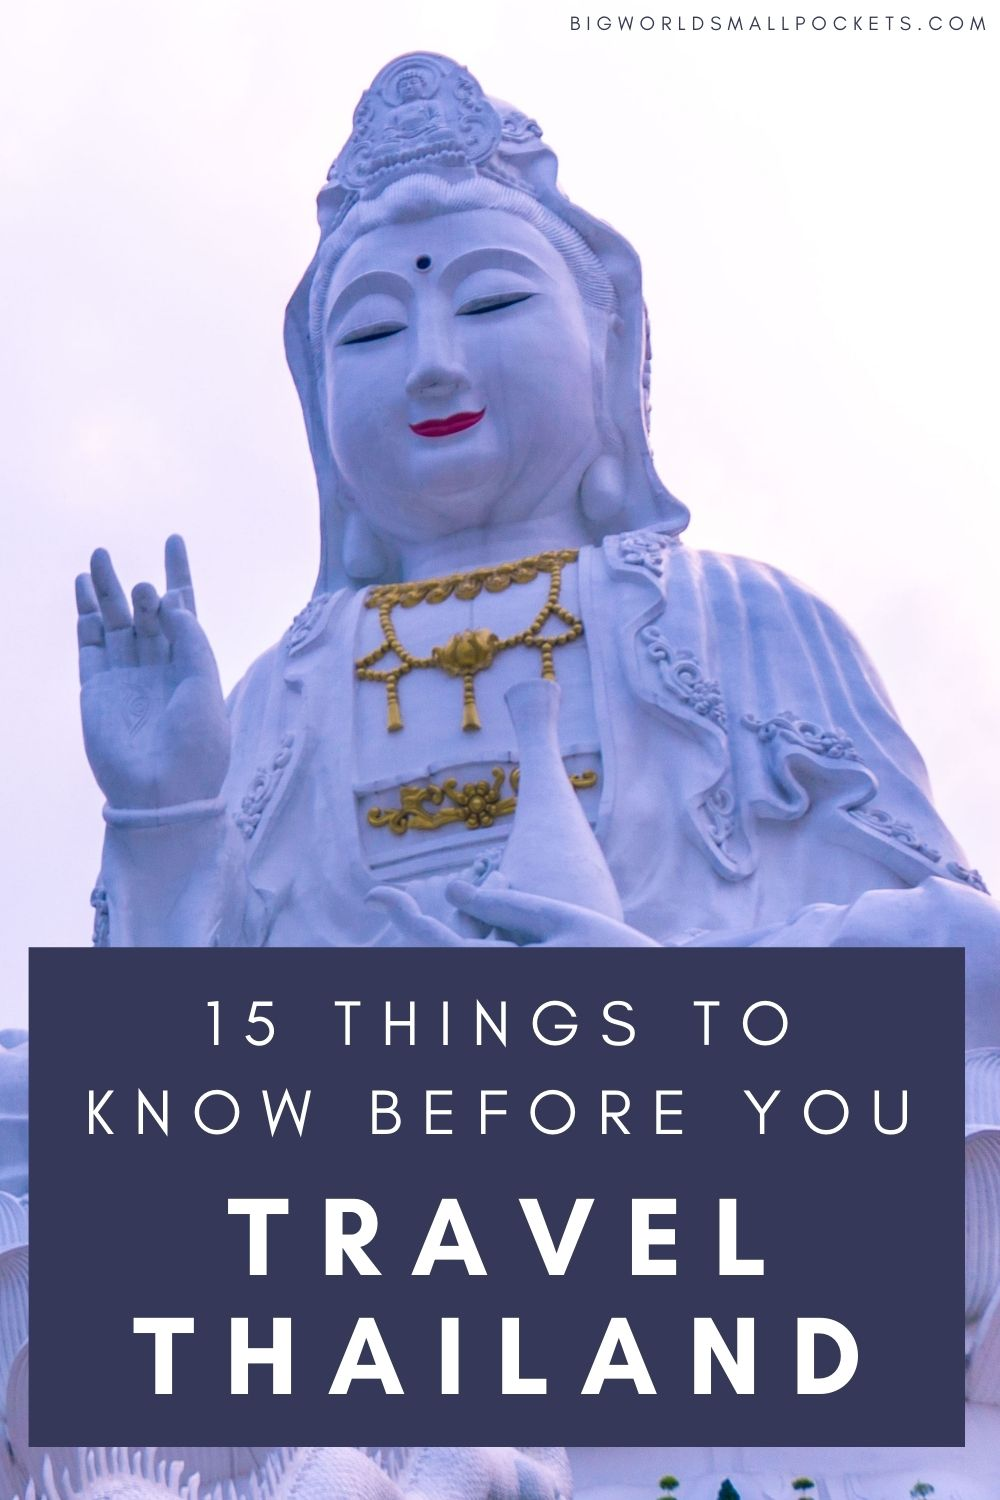 The 15 Things To Know Before You Travel in Thailand